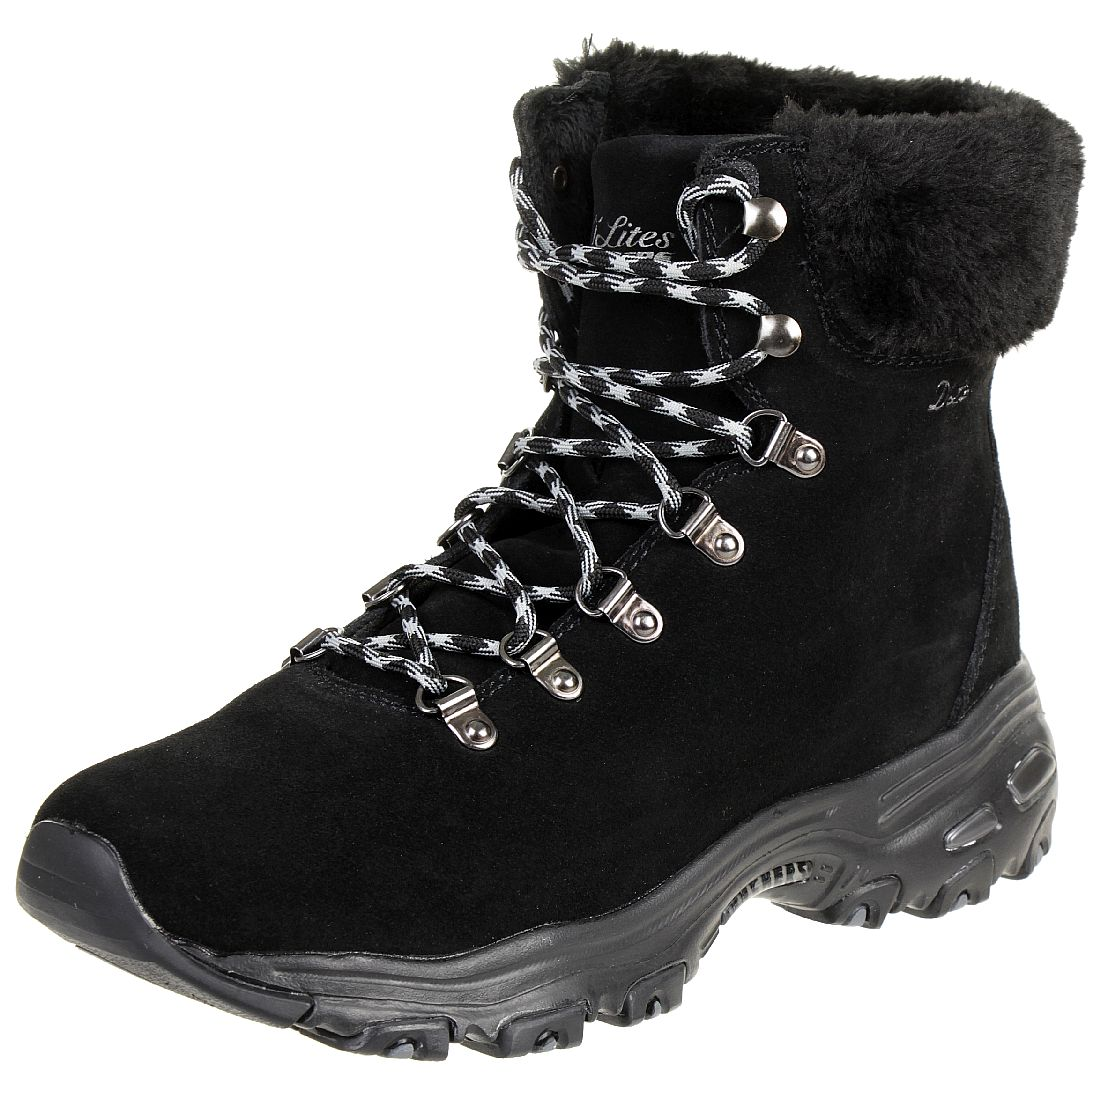 skechers winterschuhe